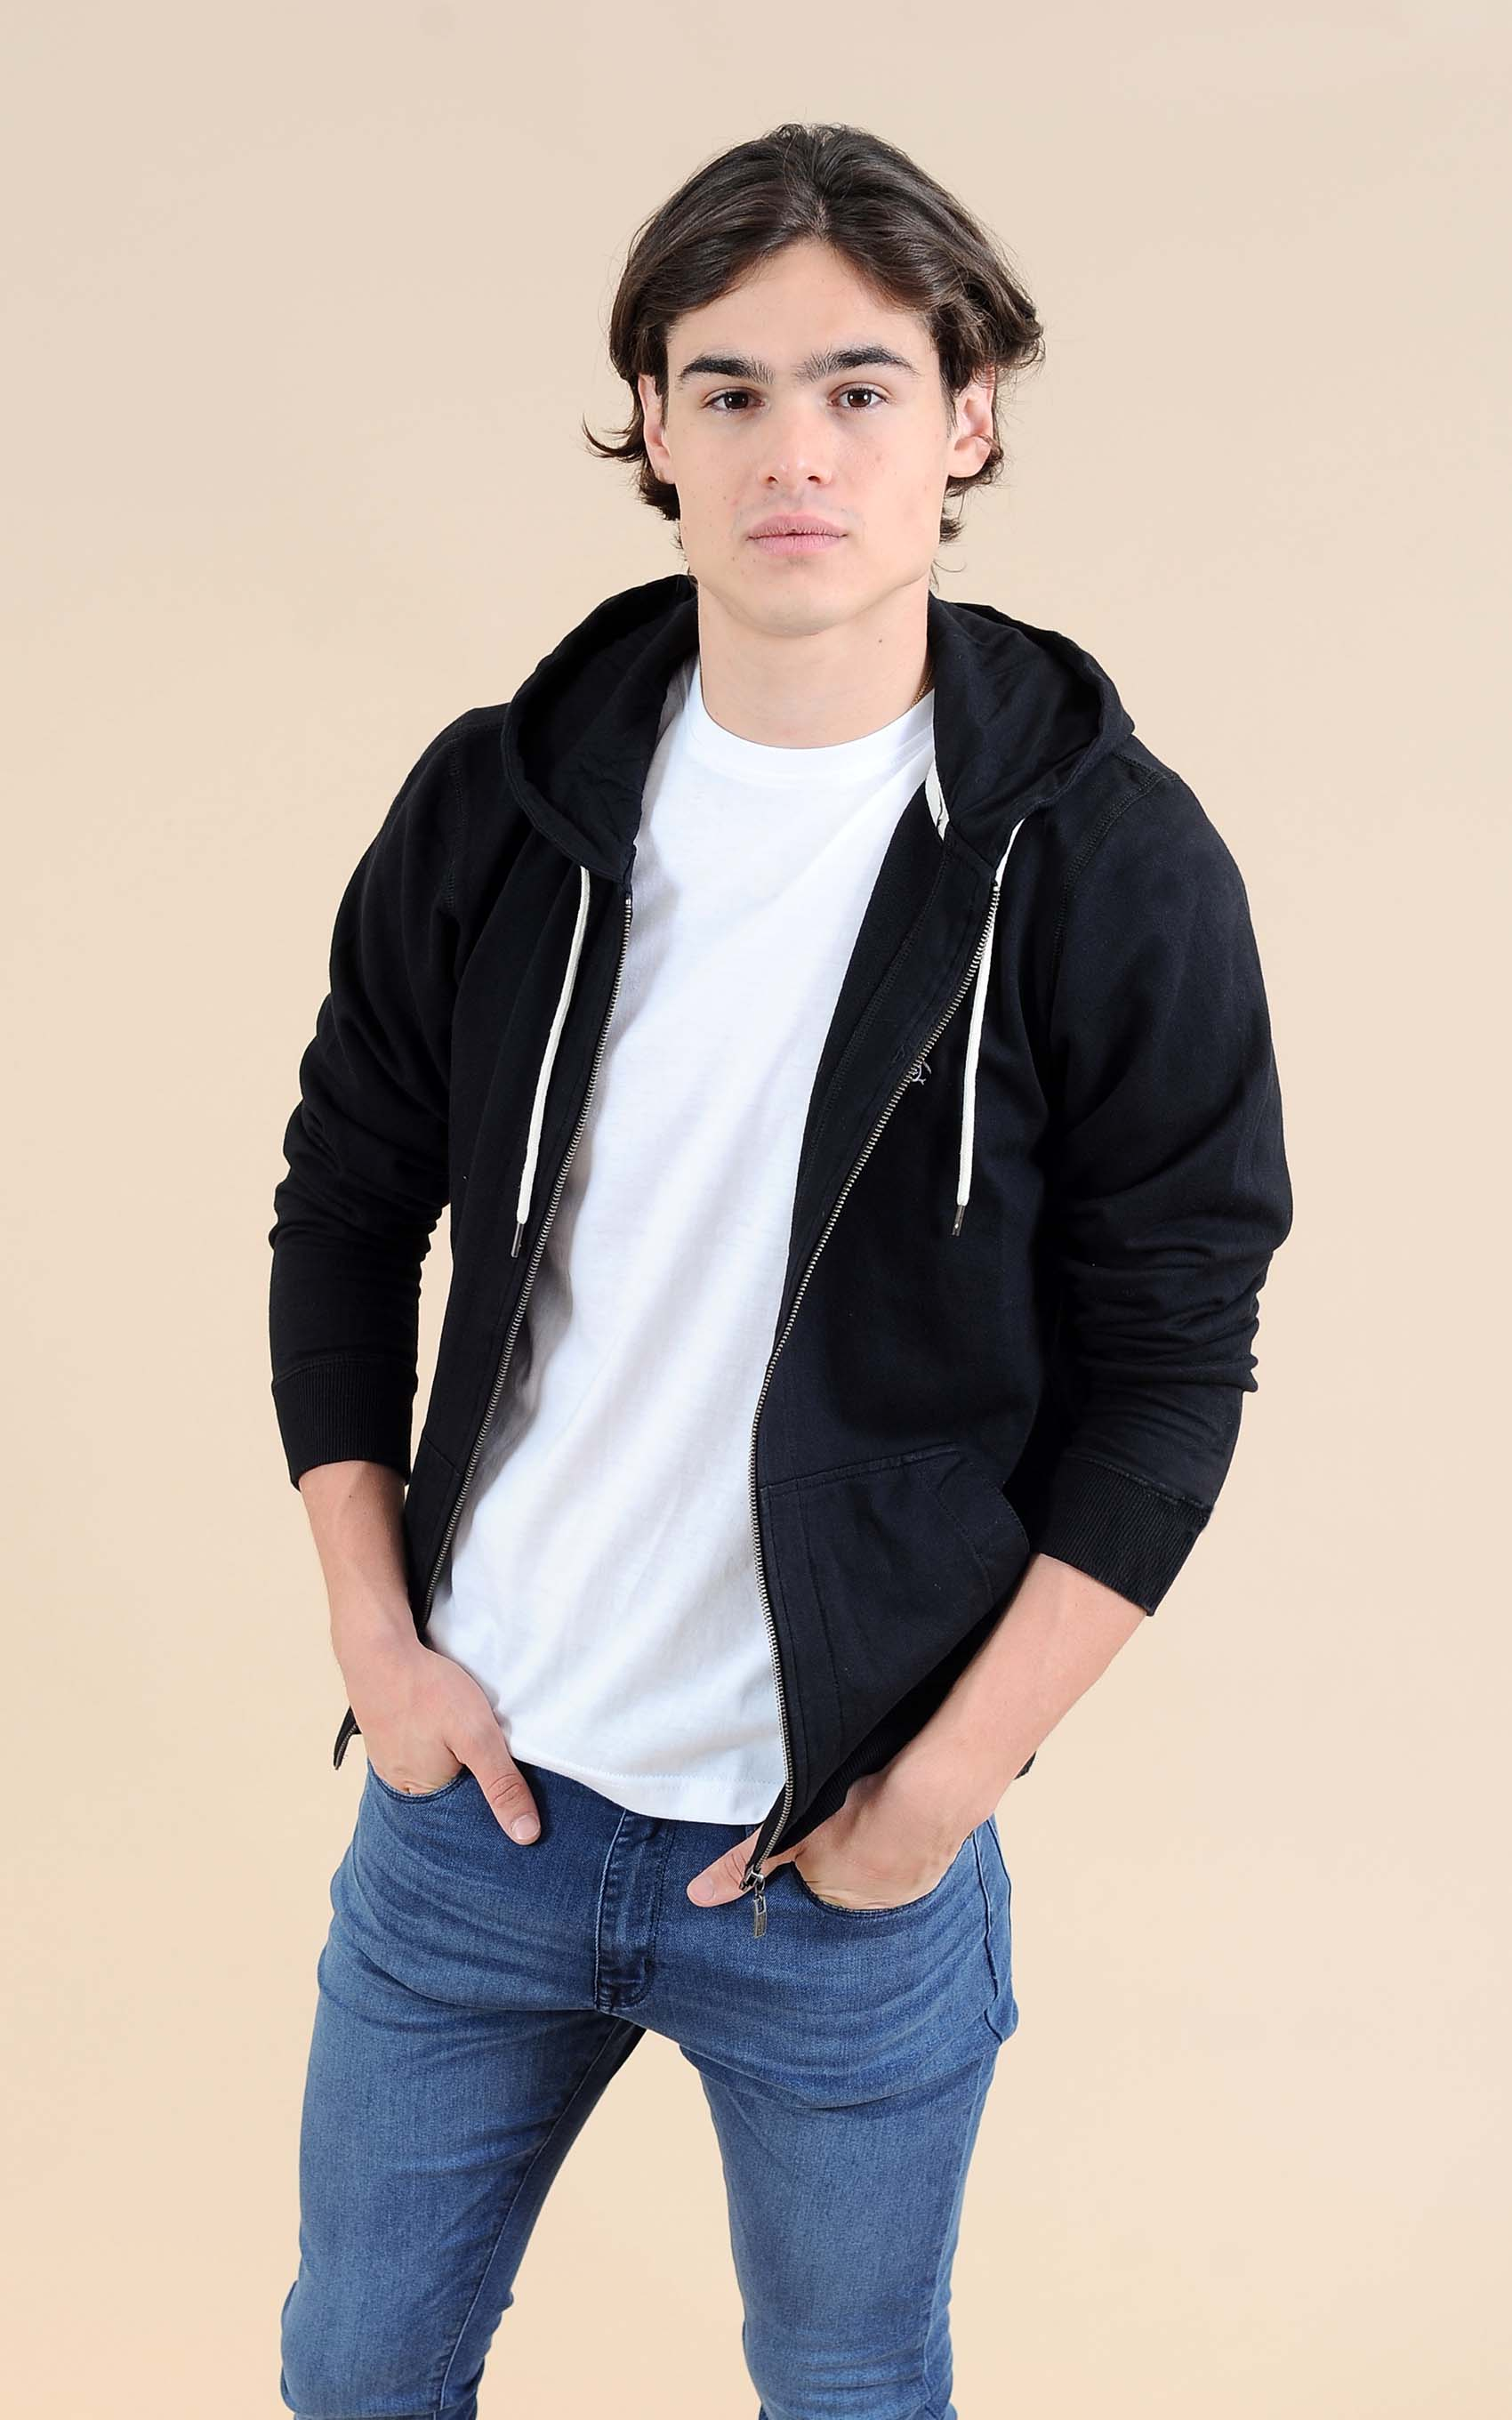 penguin_basic-hoody_43-18-2021__picture-17847